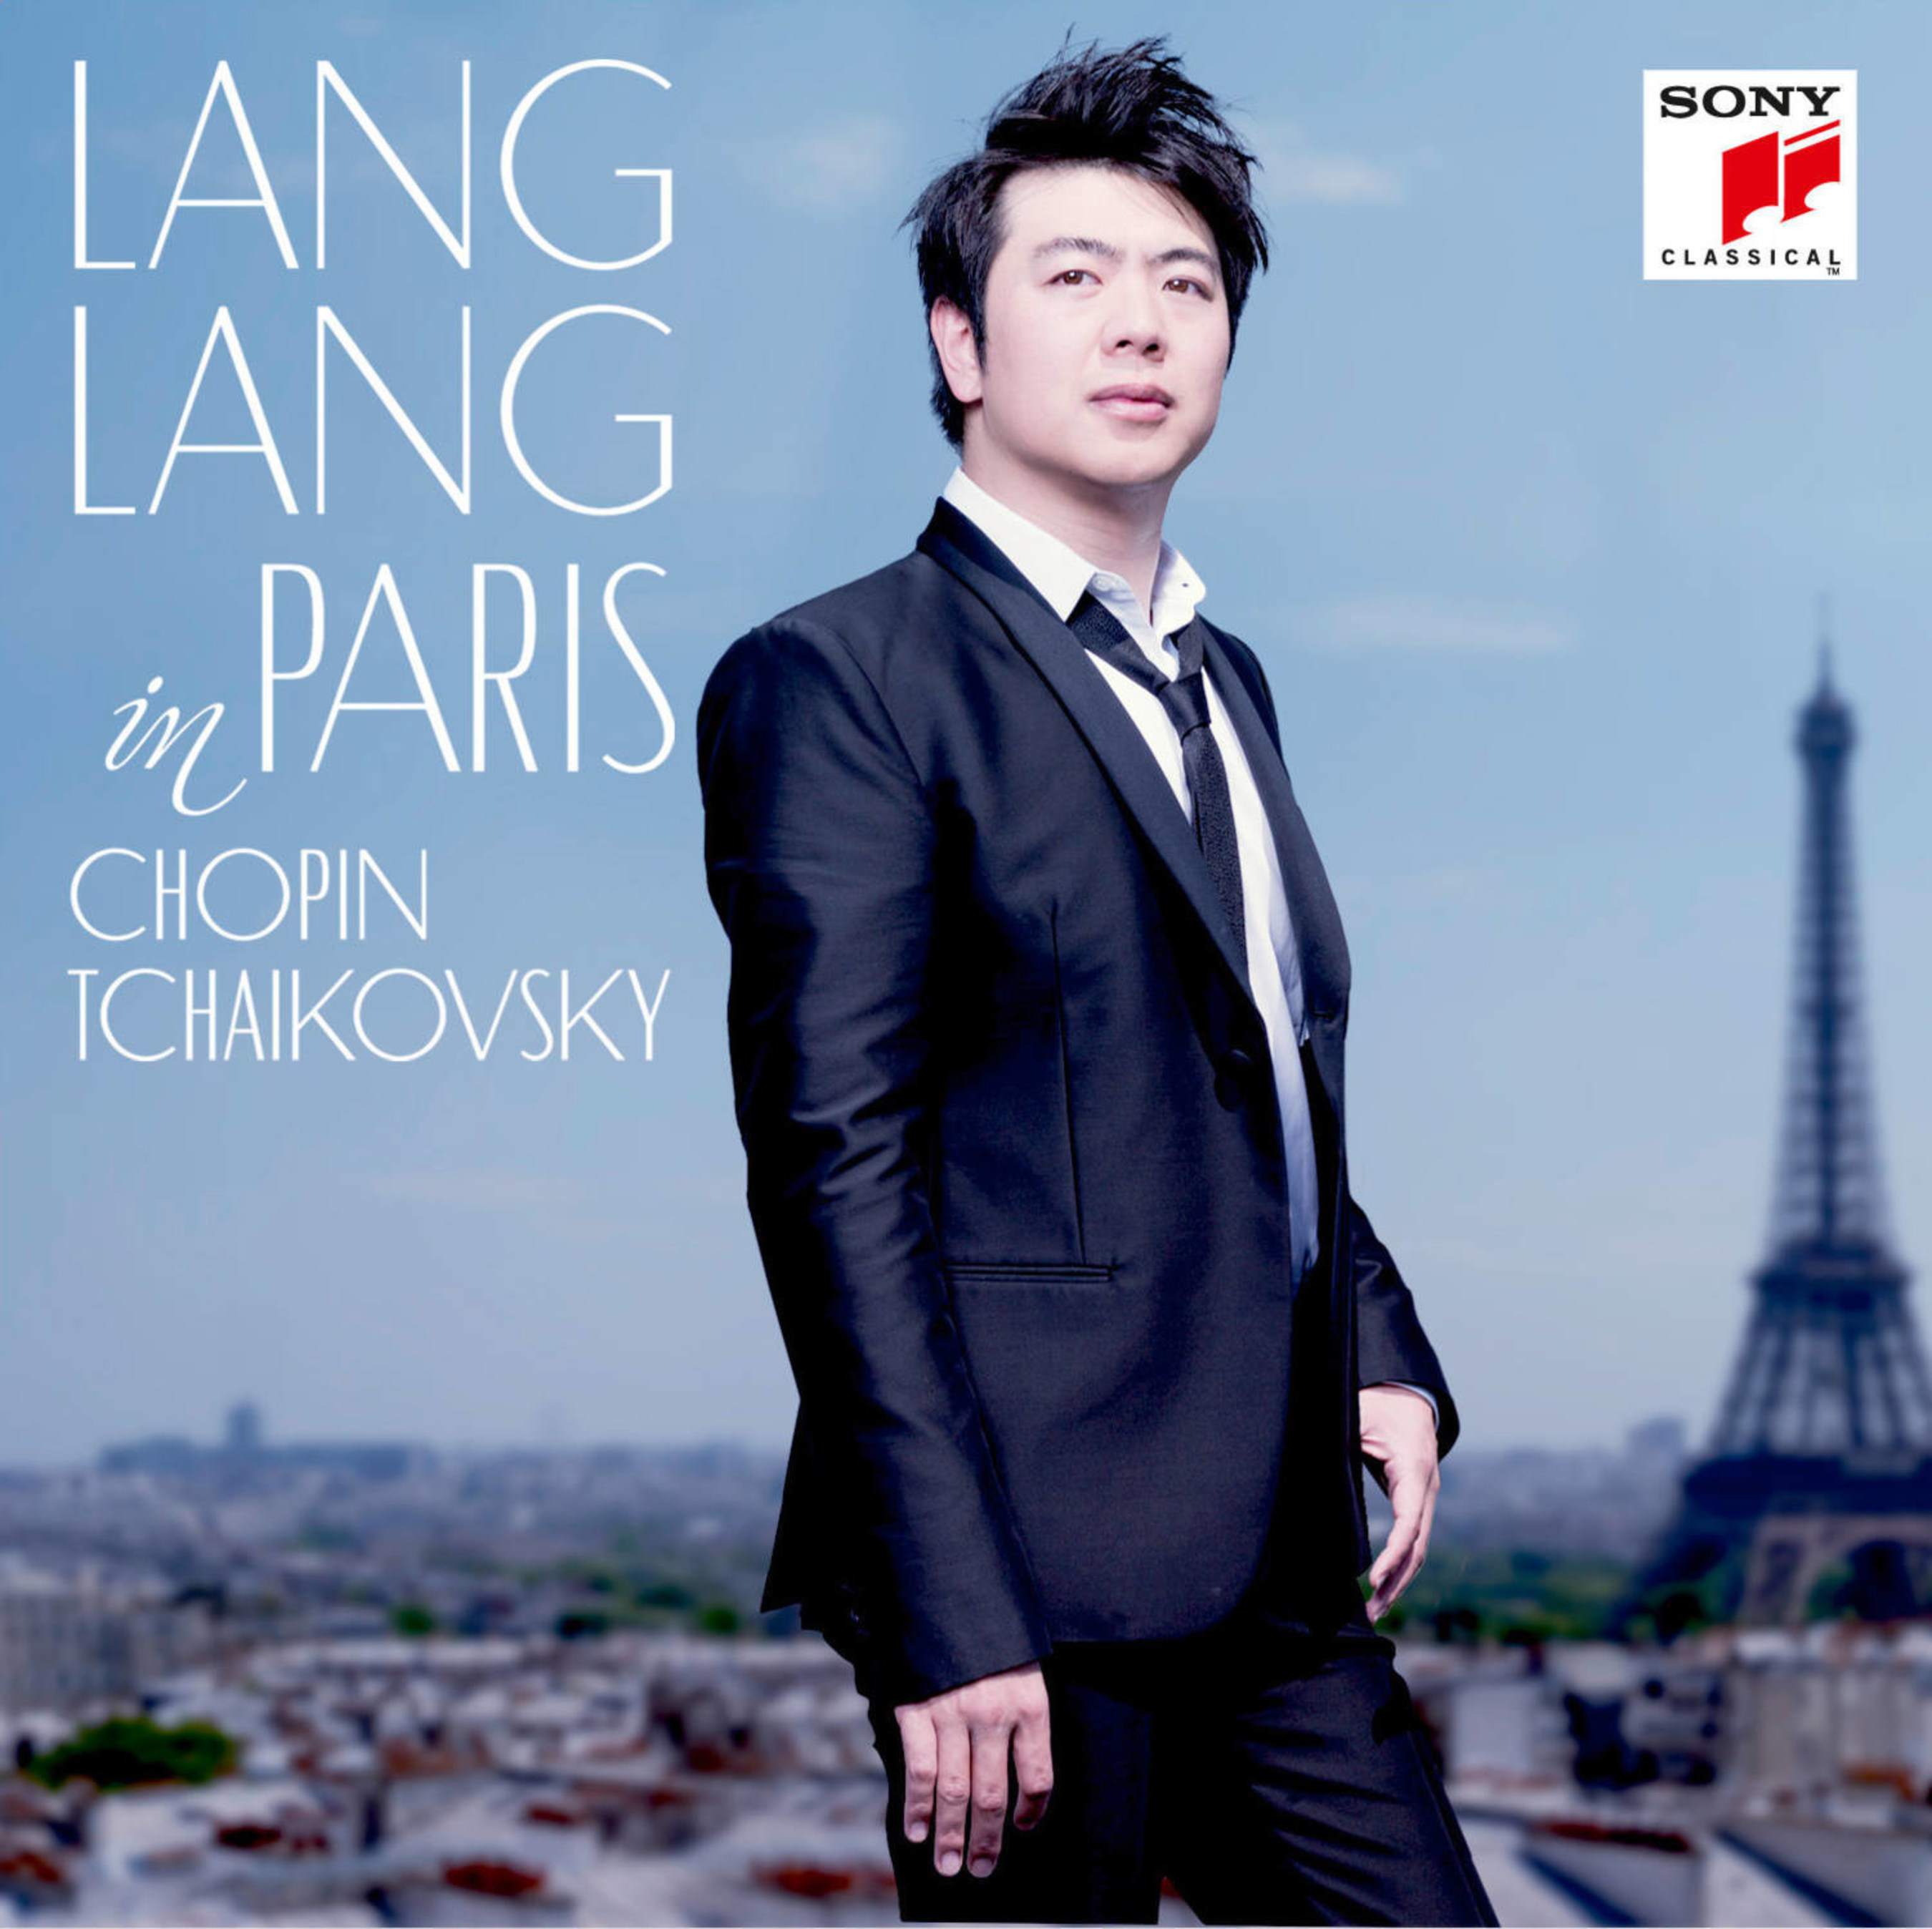 Lang Lang in Paris - The New Album Recorded in Paris Featuring Music By Chopin and Tchaikovsky